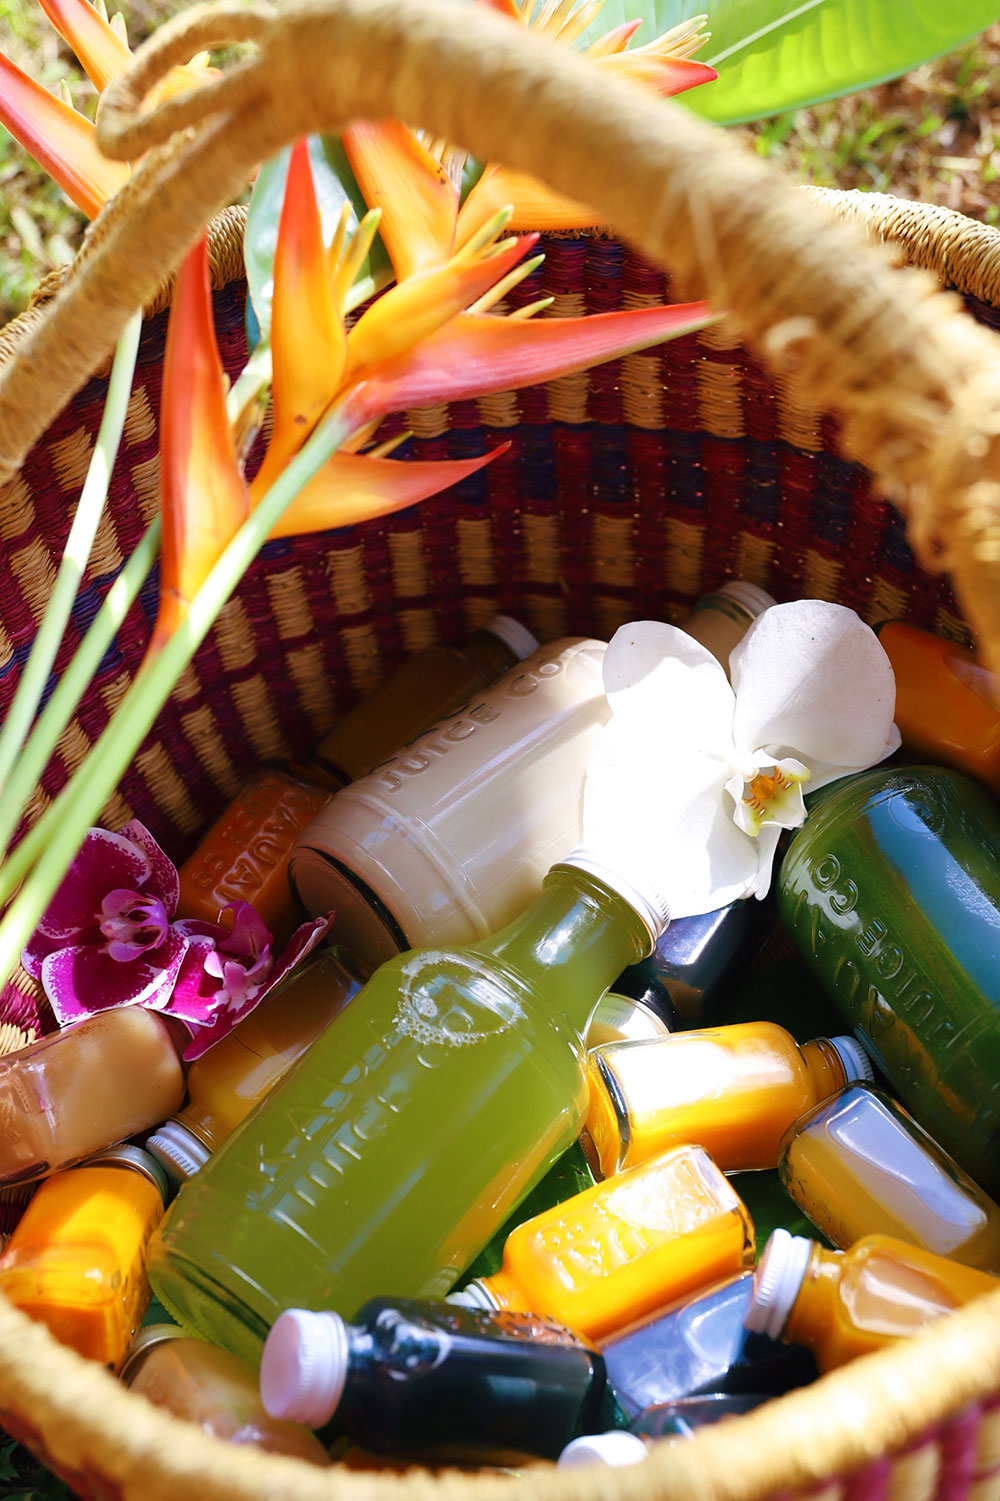 Bottles of elixers, kombucha, and juice in a basket